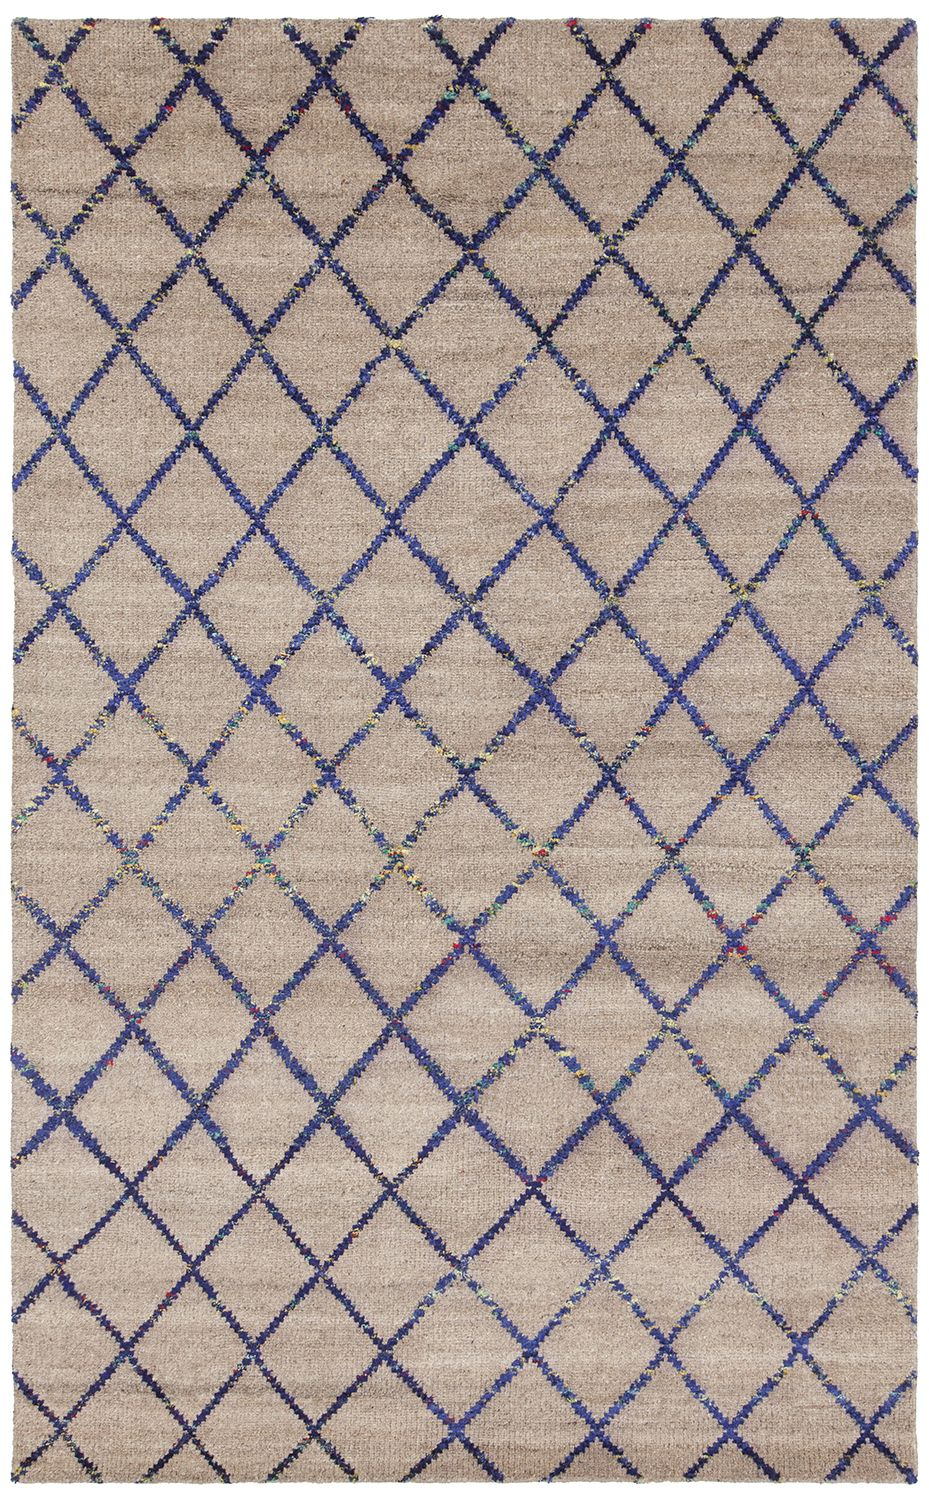 Aar 44000 Color Brown Blue Size 7 9 X 10 6 Area Rugs